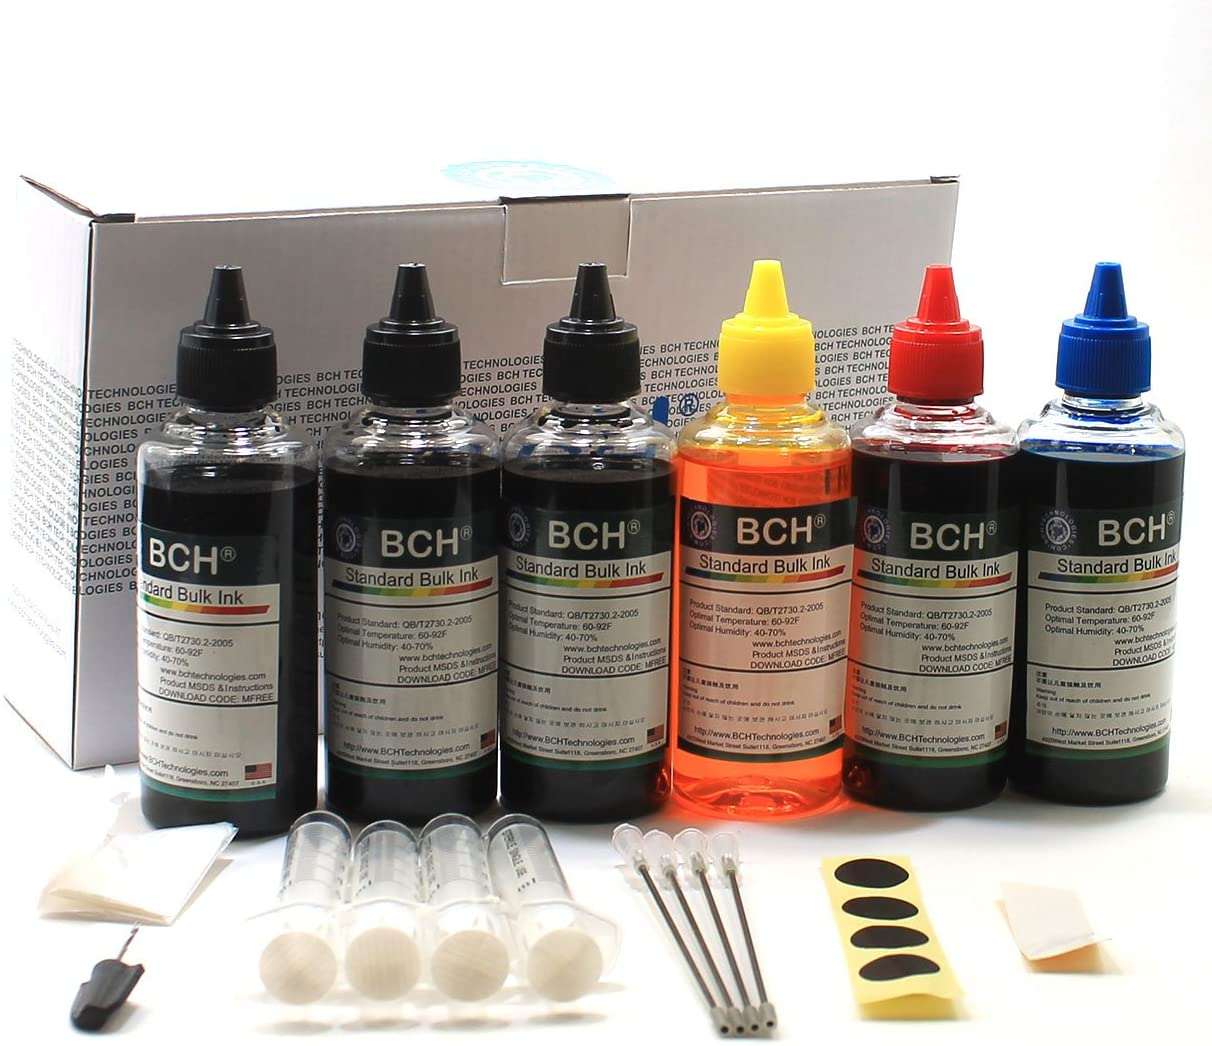 BCH Standard 600 ml Refill Ink Kit for Inkjet Cartridges - Especially for Printer Name Starts with H